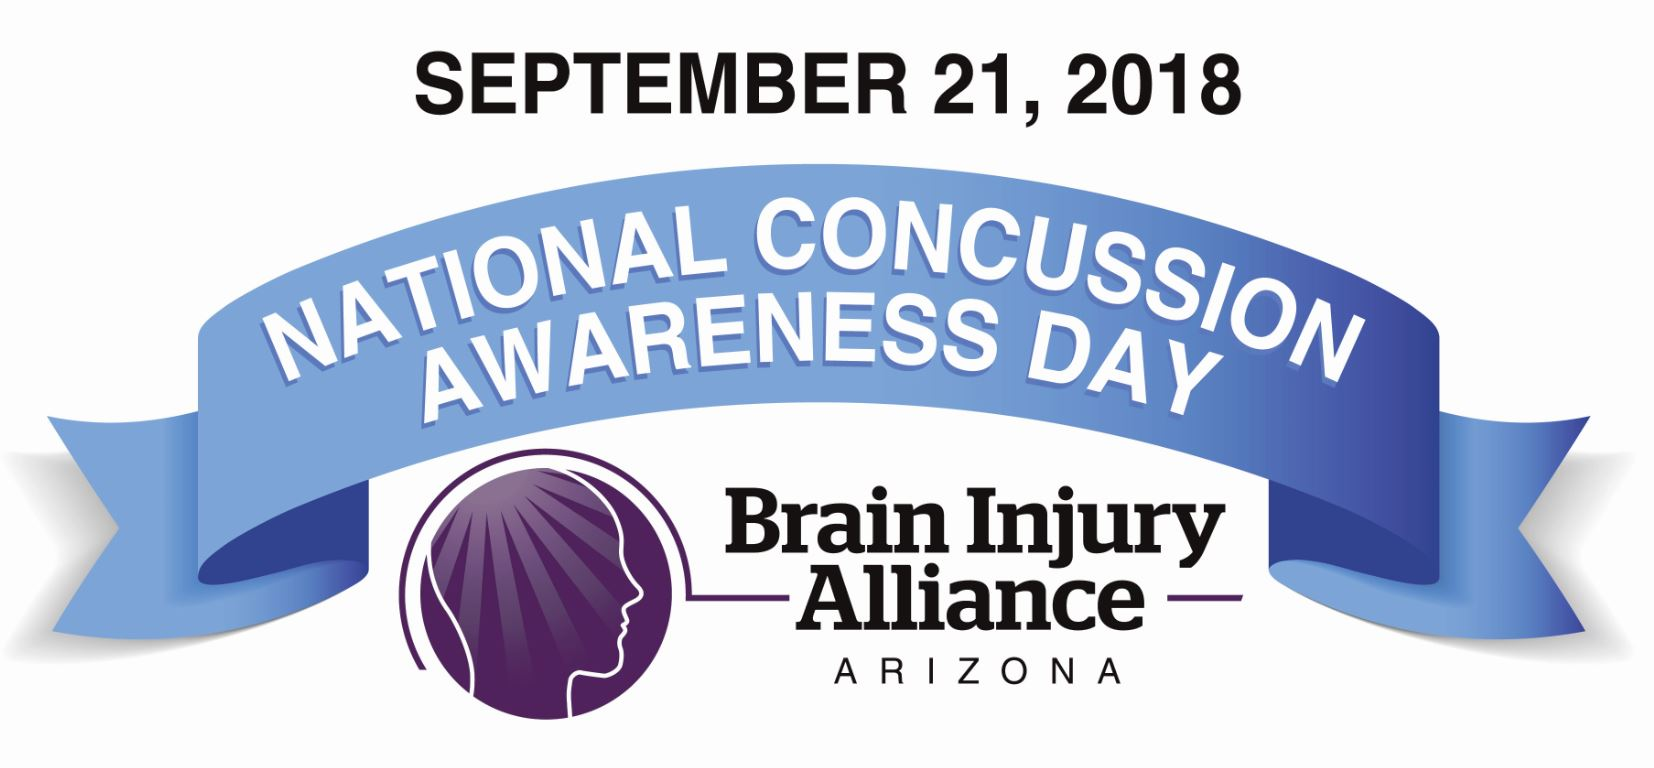 September 21, 2018 National Concussion Awareness Day, Brain Injury Alliance Arizona